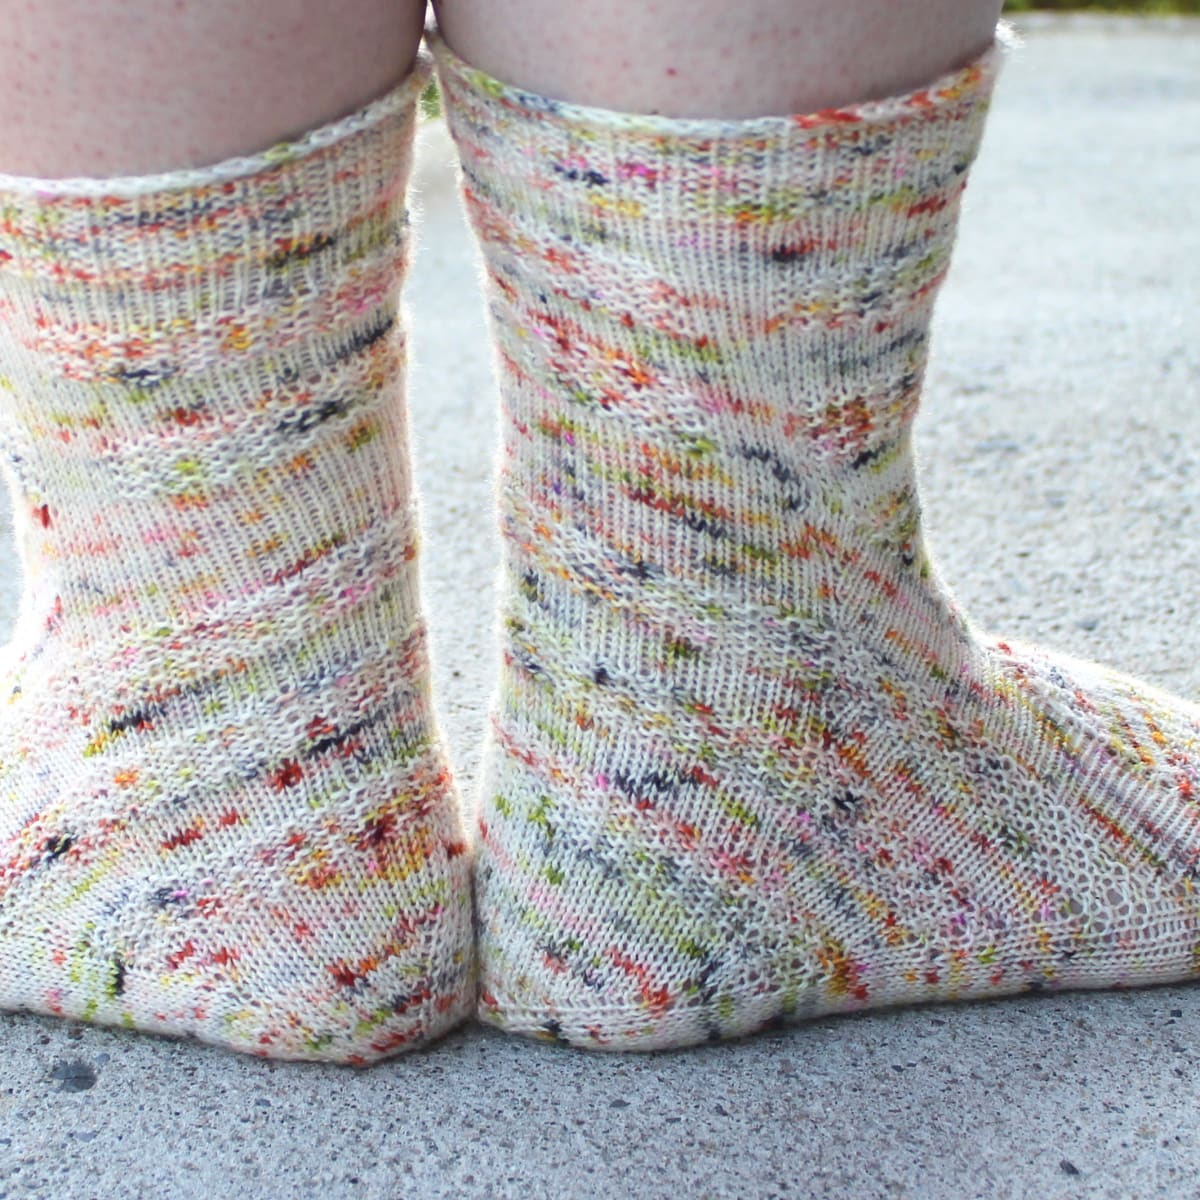 Back view of heavily-speckled white socks with semicircular texture details.